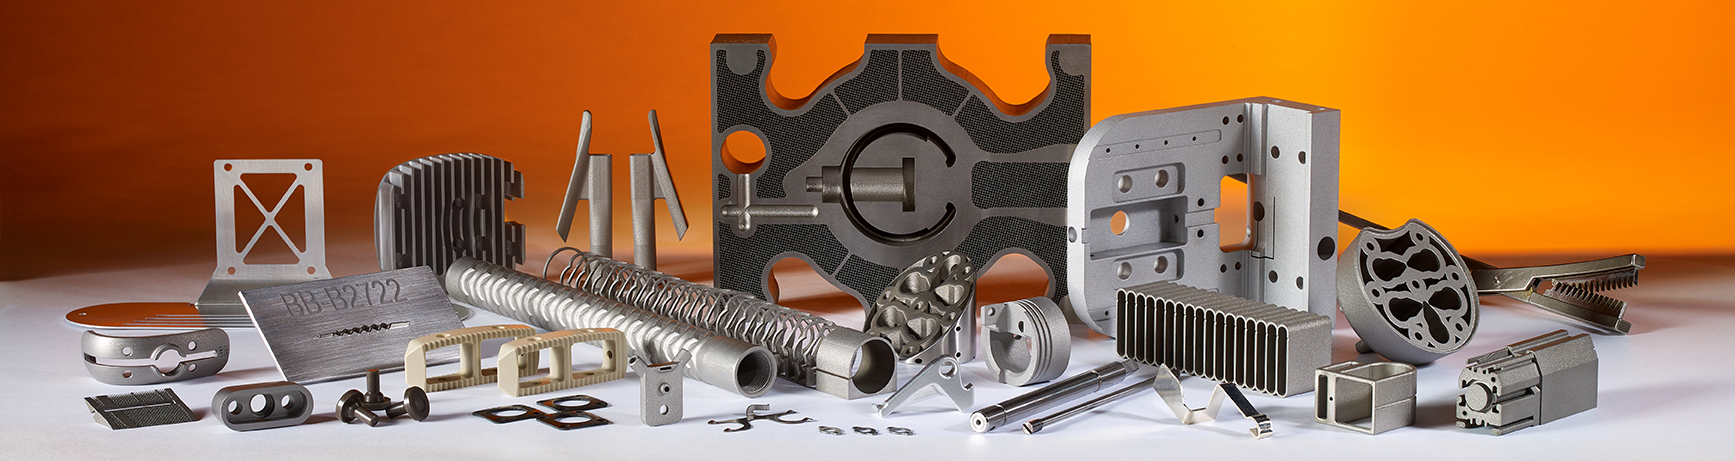 metalcraft_homepage banner_resized